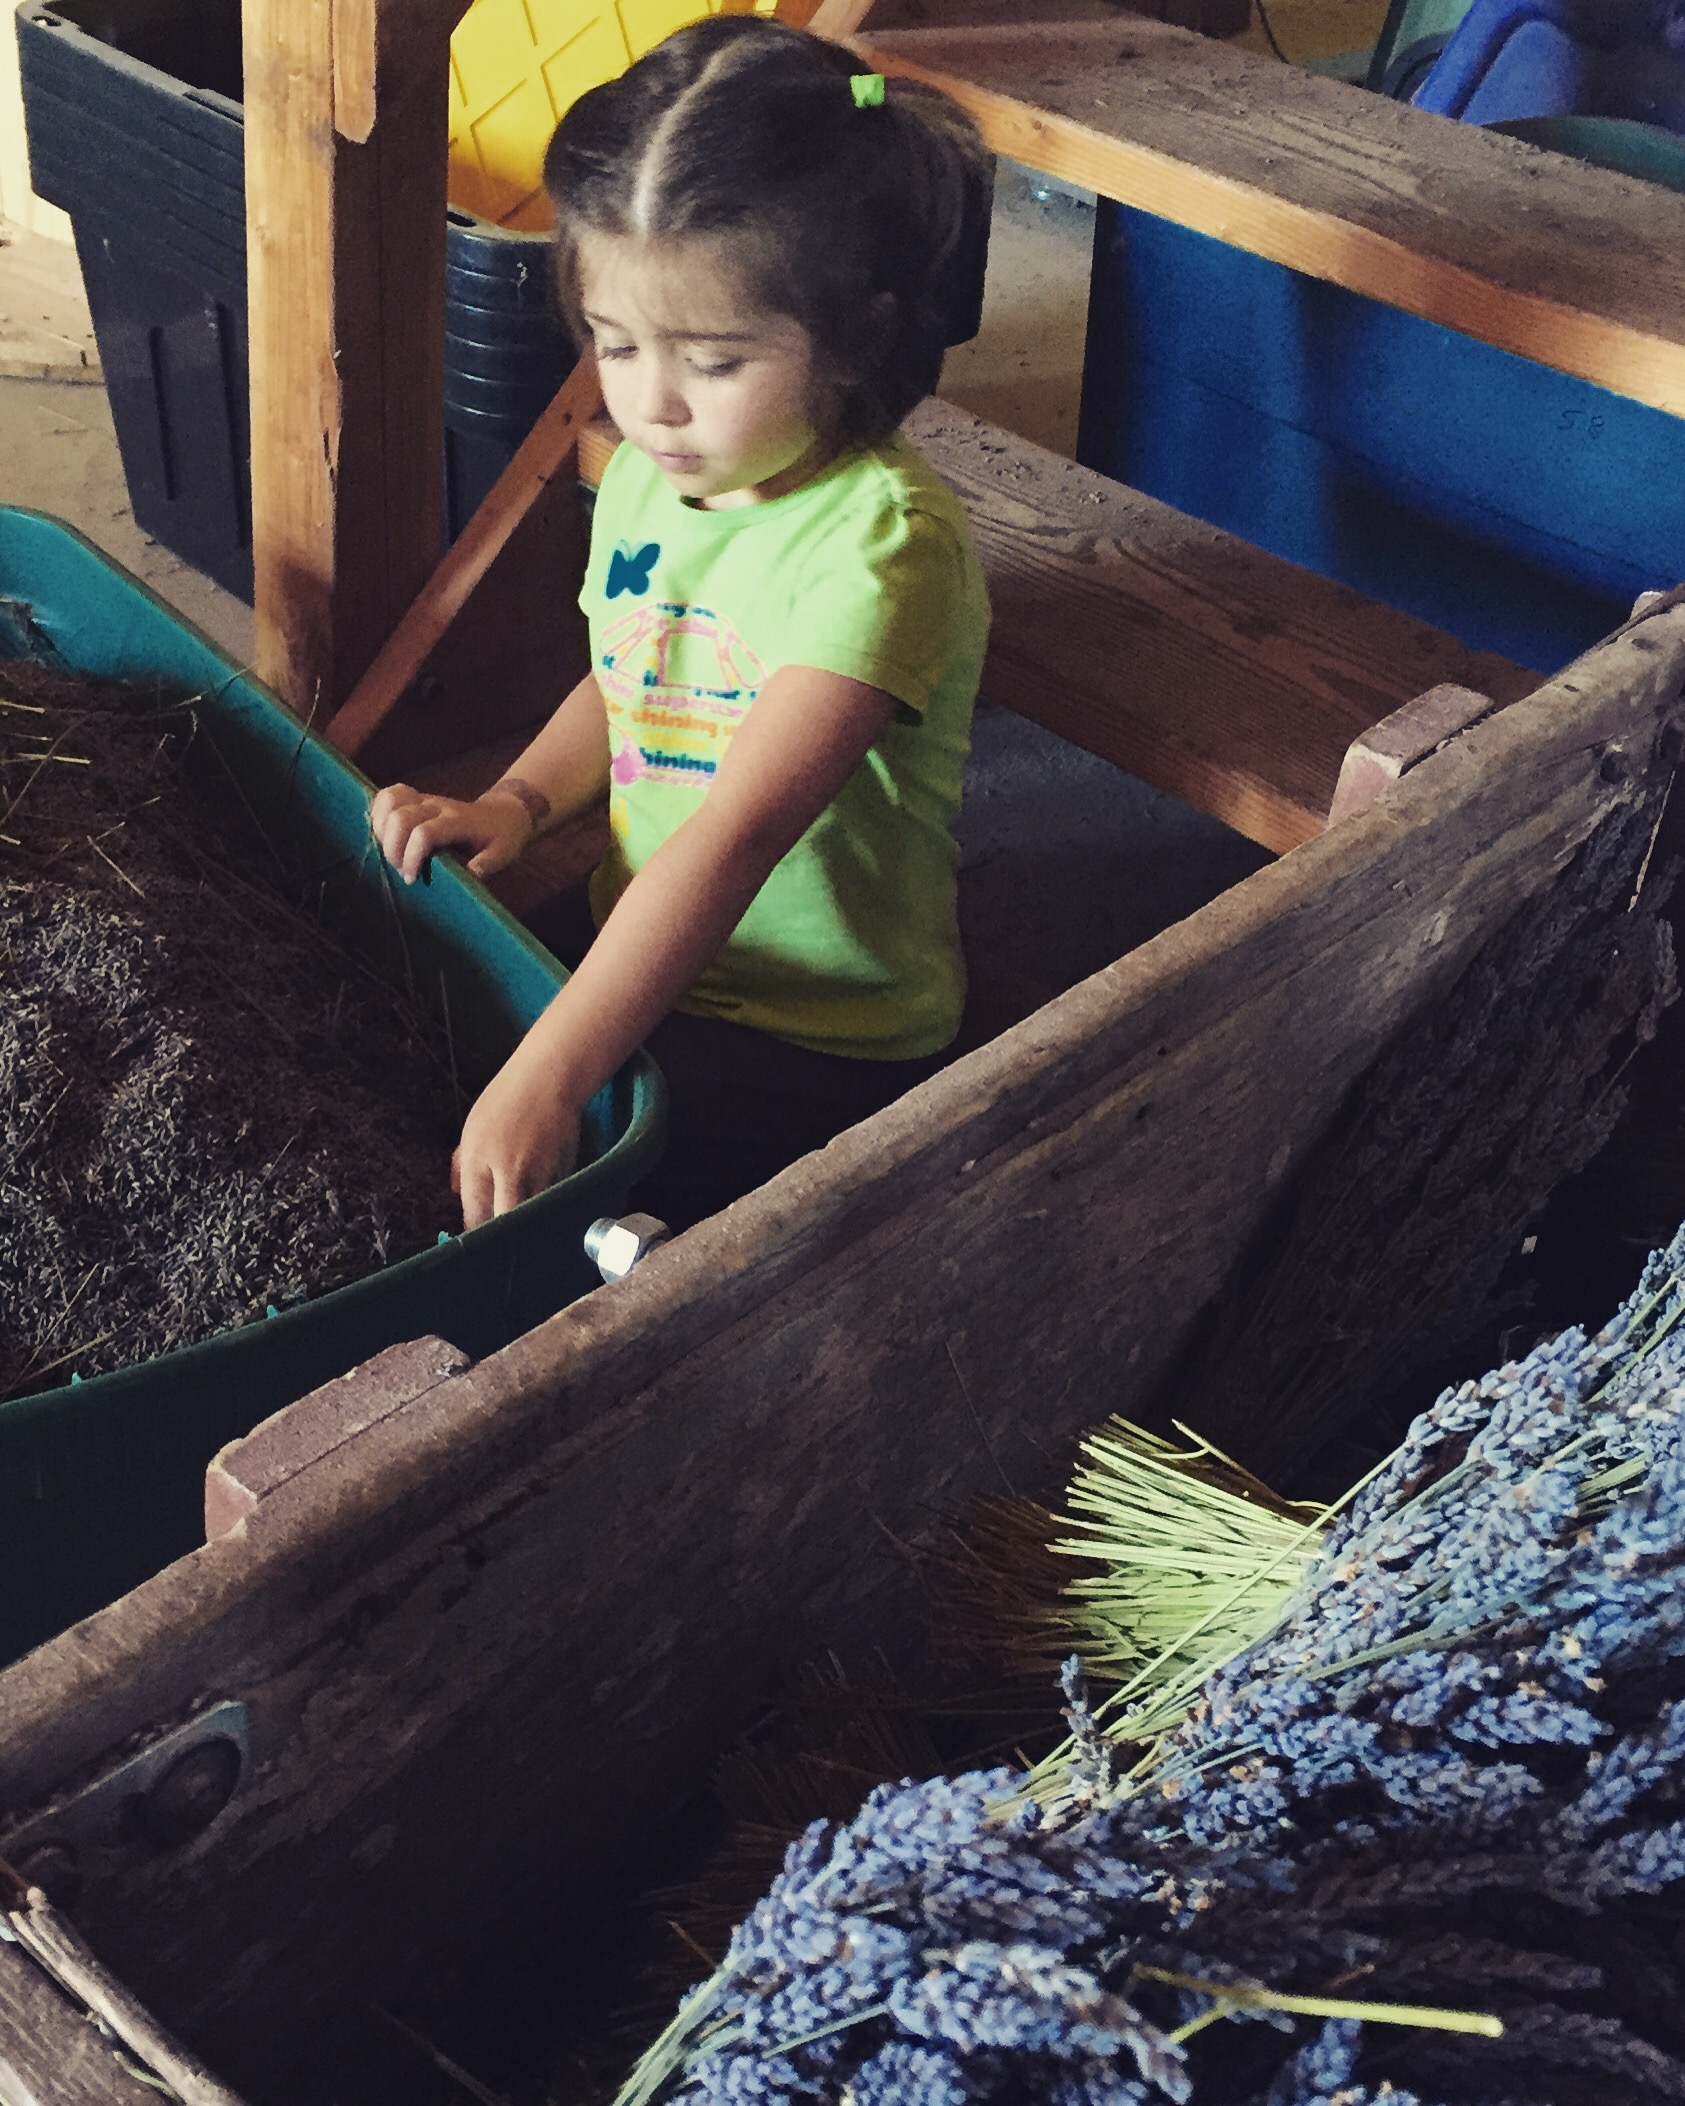 Our little lavender girl helping clean the bud, one stem at a time.